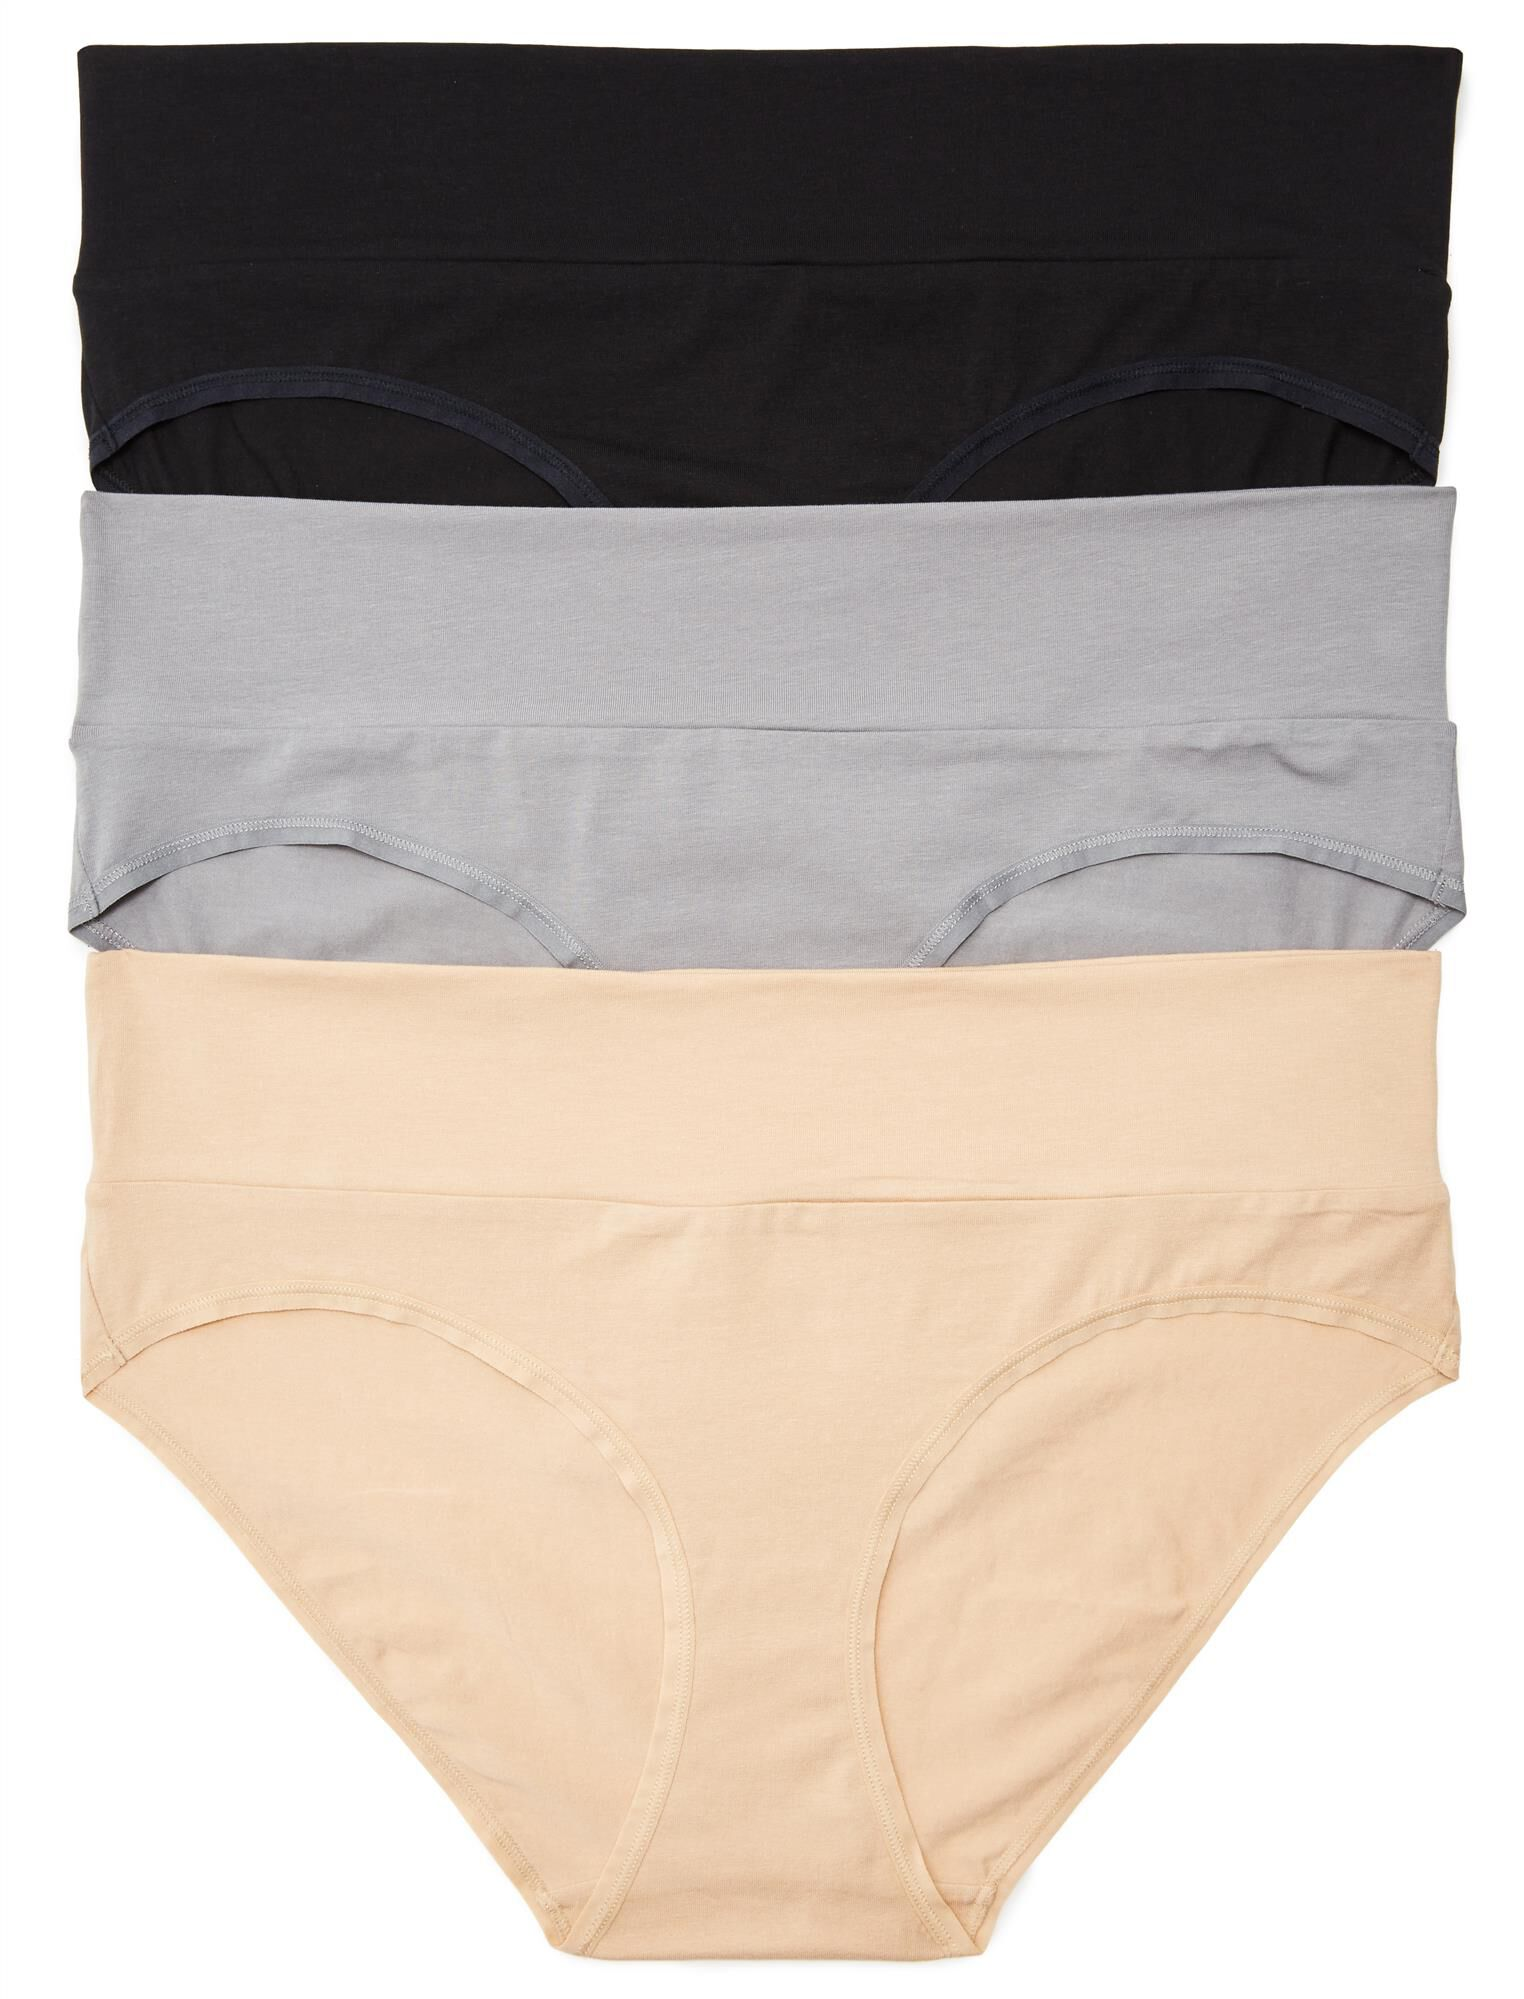 Plus Size Maternity Fold Over Panties (3 Pack)